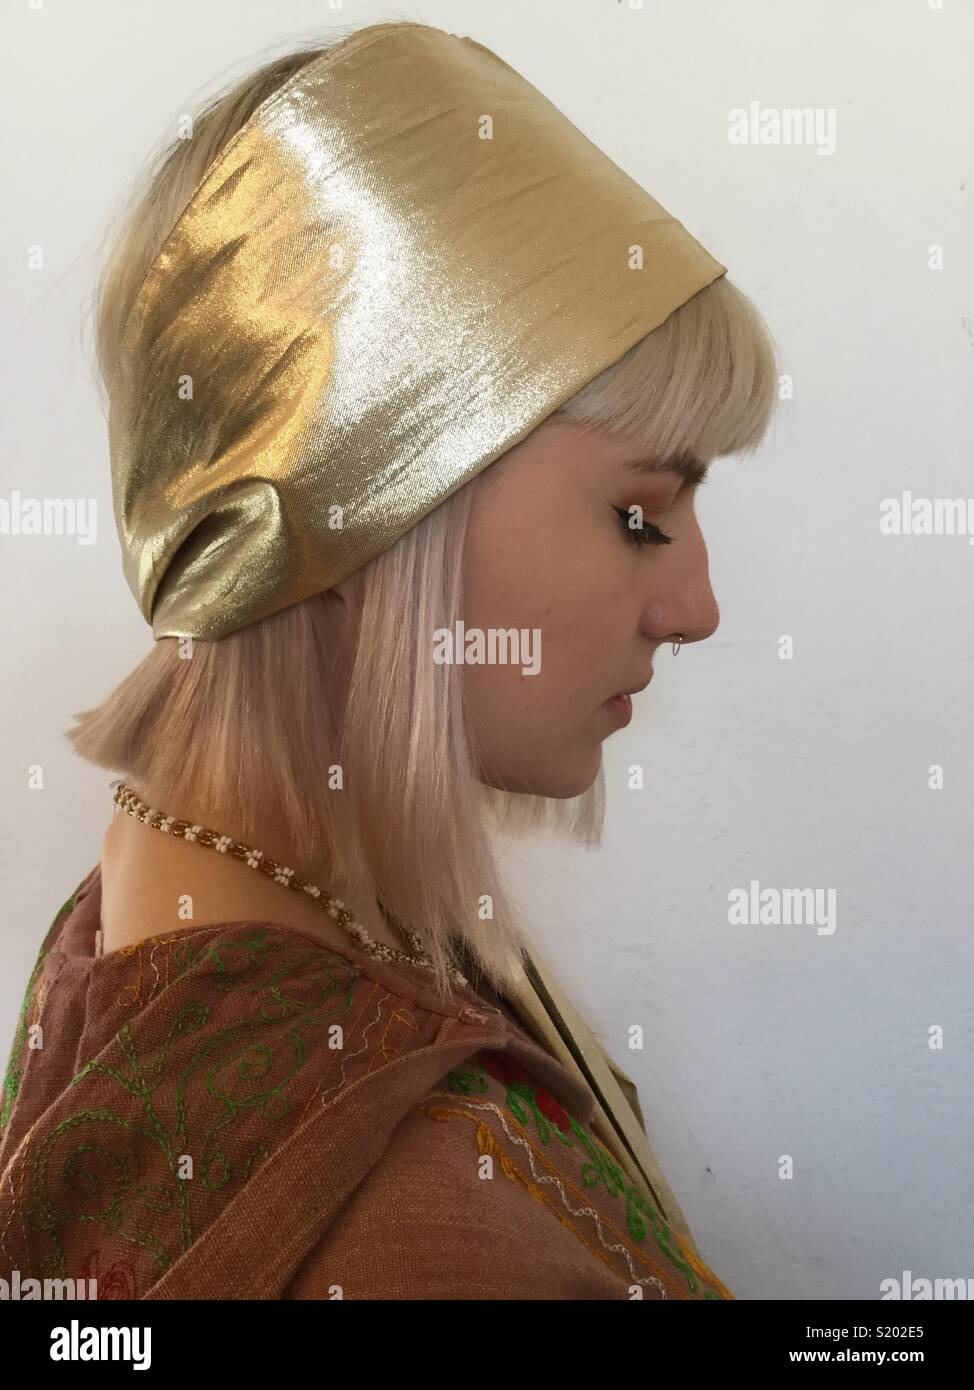 Gold Lame Scarf - Stock Image